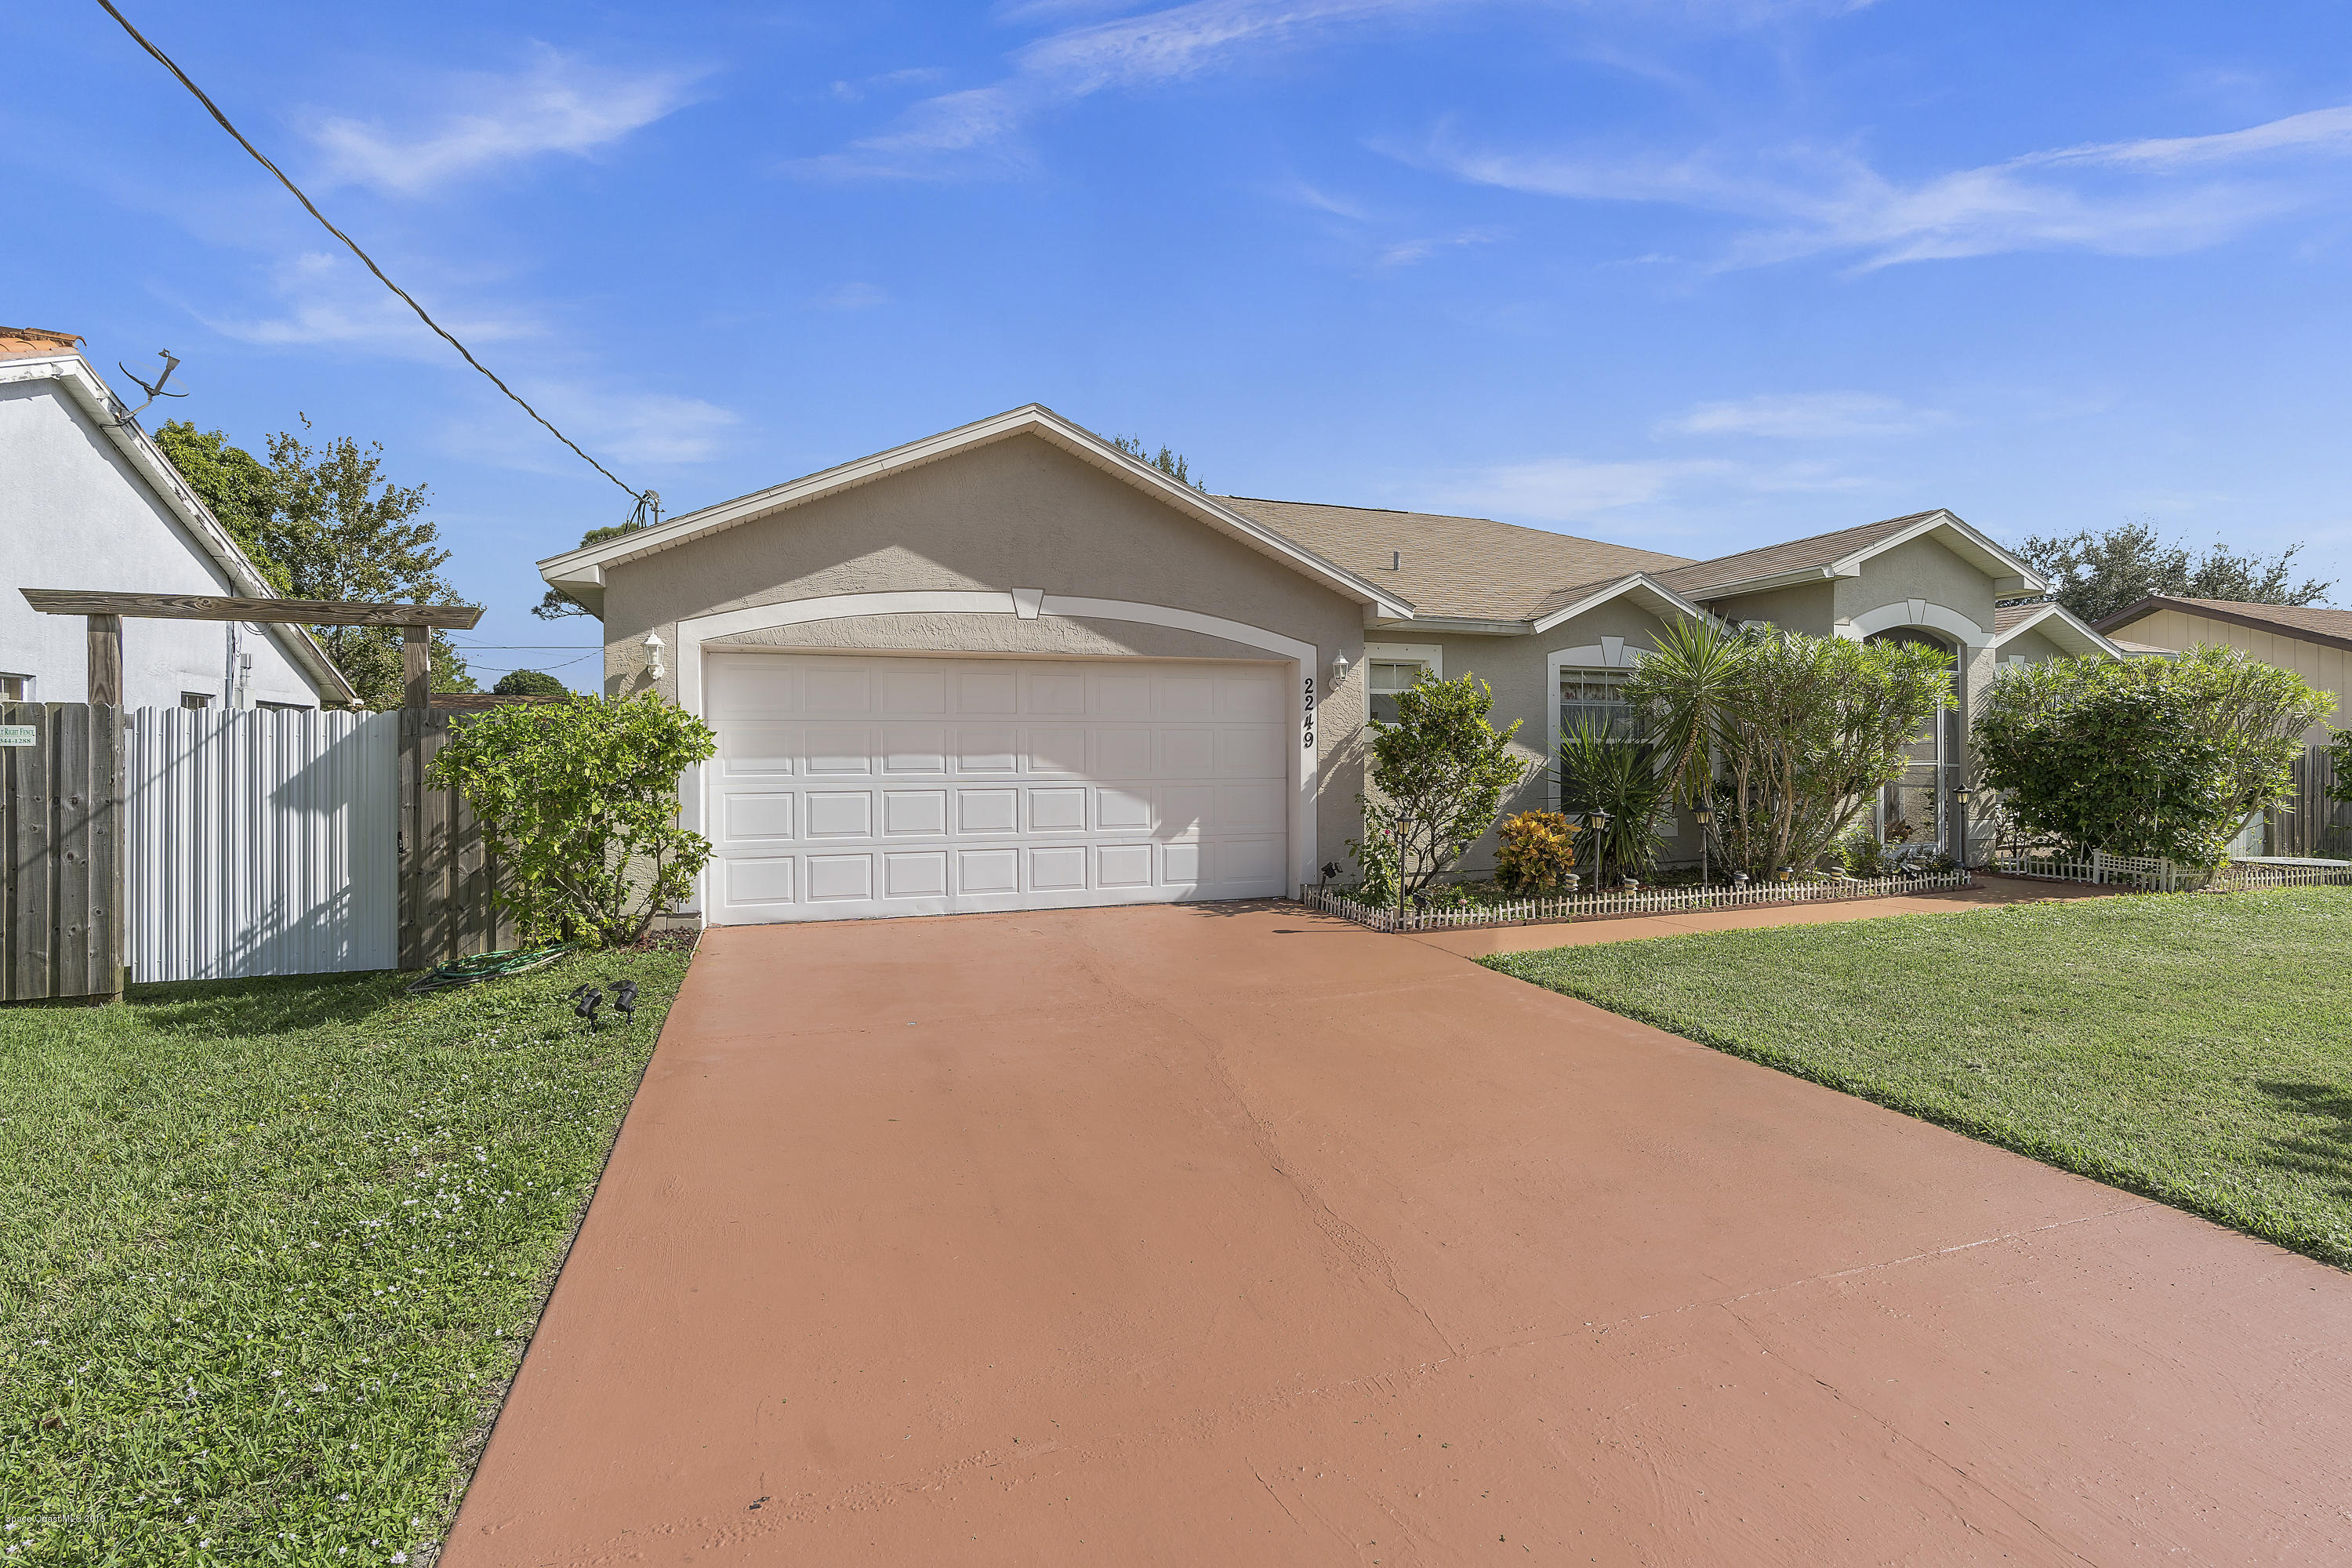 Single Family Homes for Sale at 2249 Trillo Port St. Lucie, Florida 34952 United States